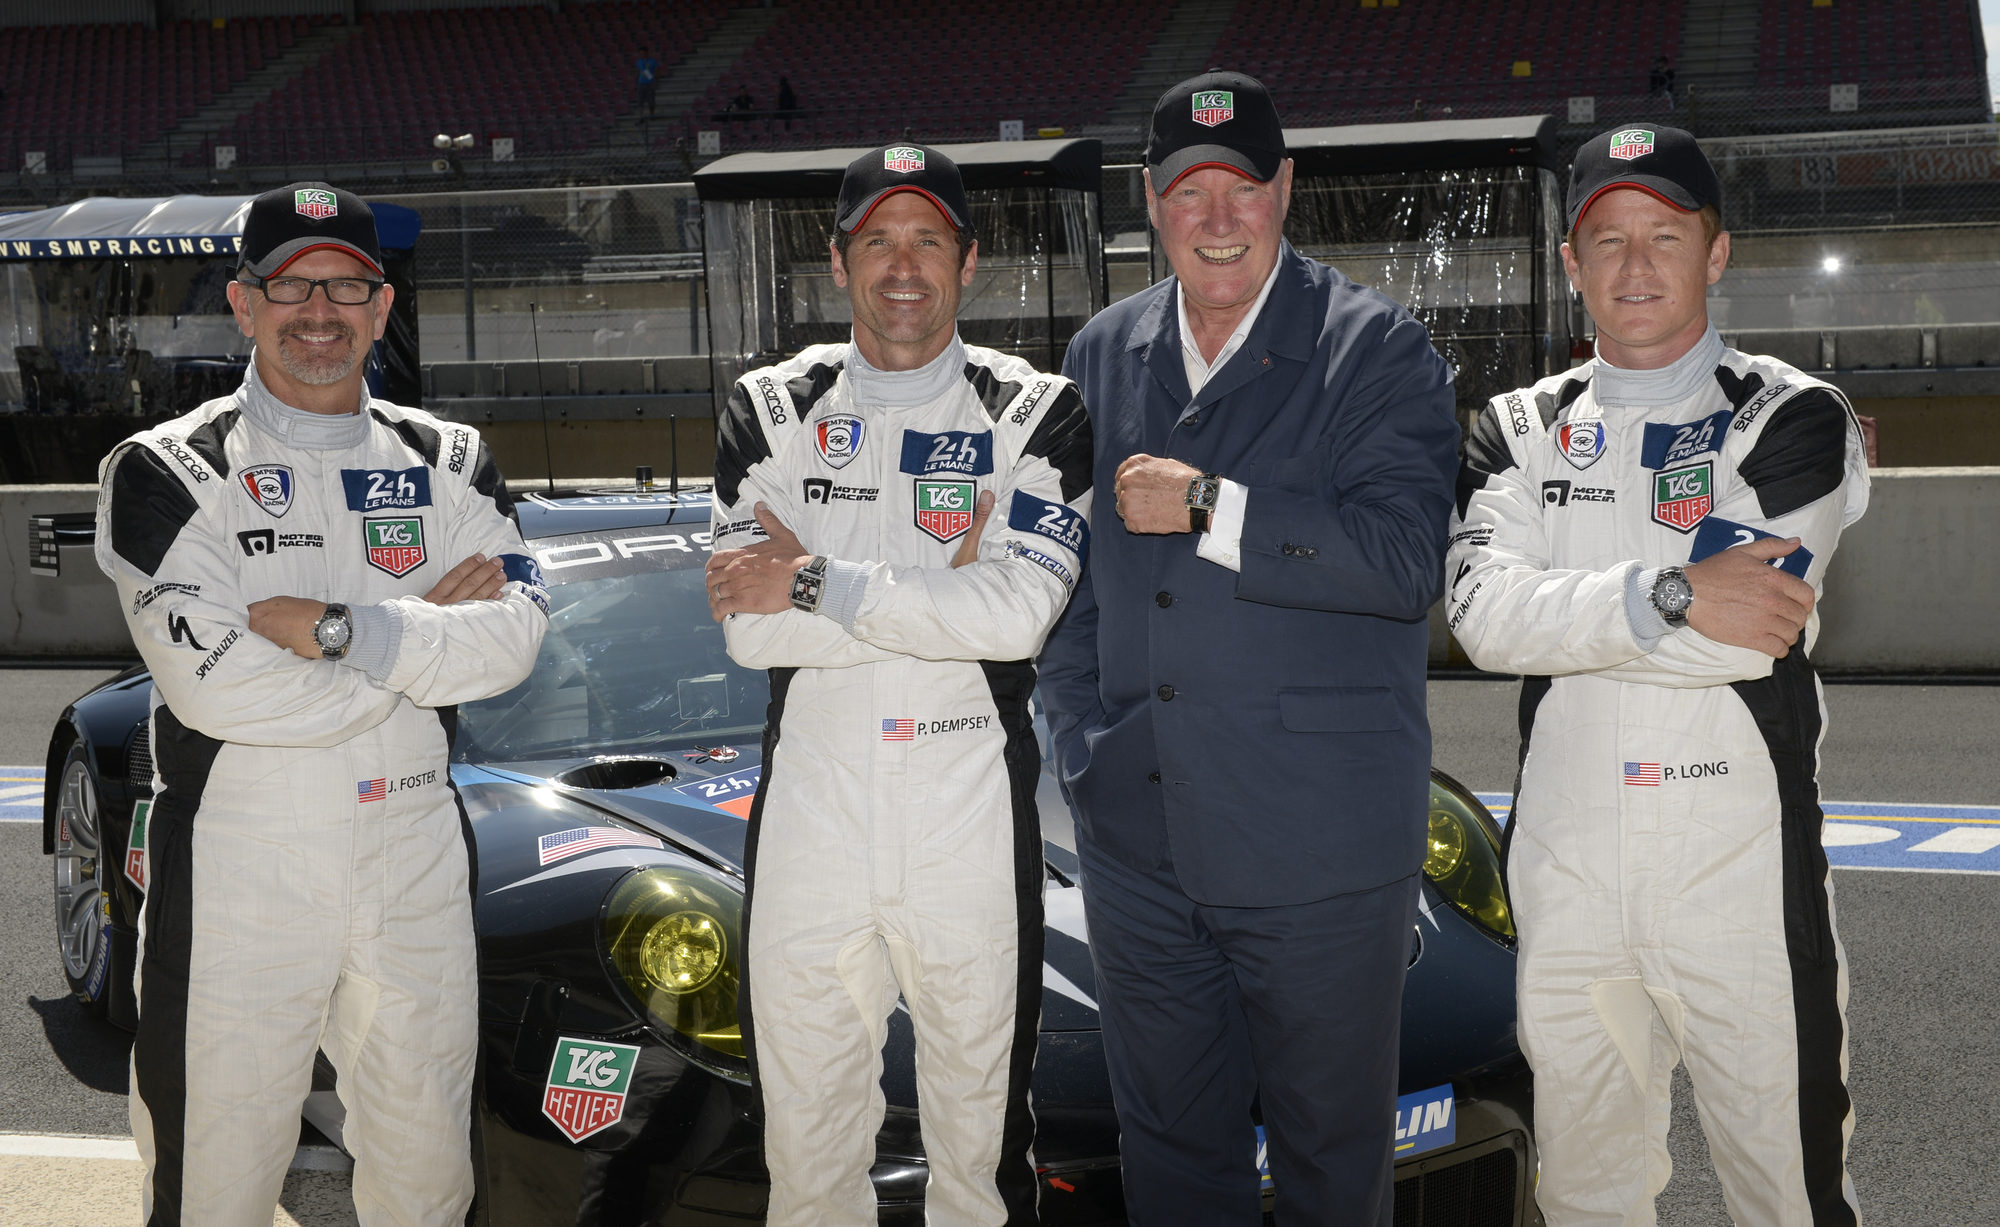 Tag Heuer Once Again Makes History At Le Mans With Patrick Dempsey